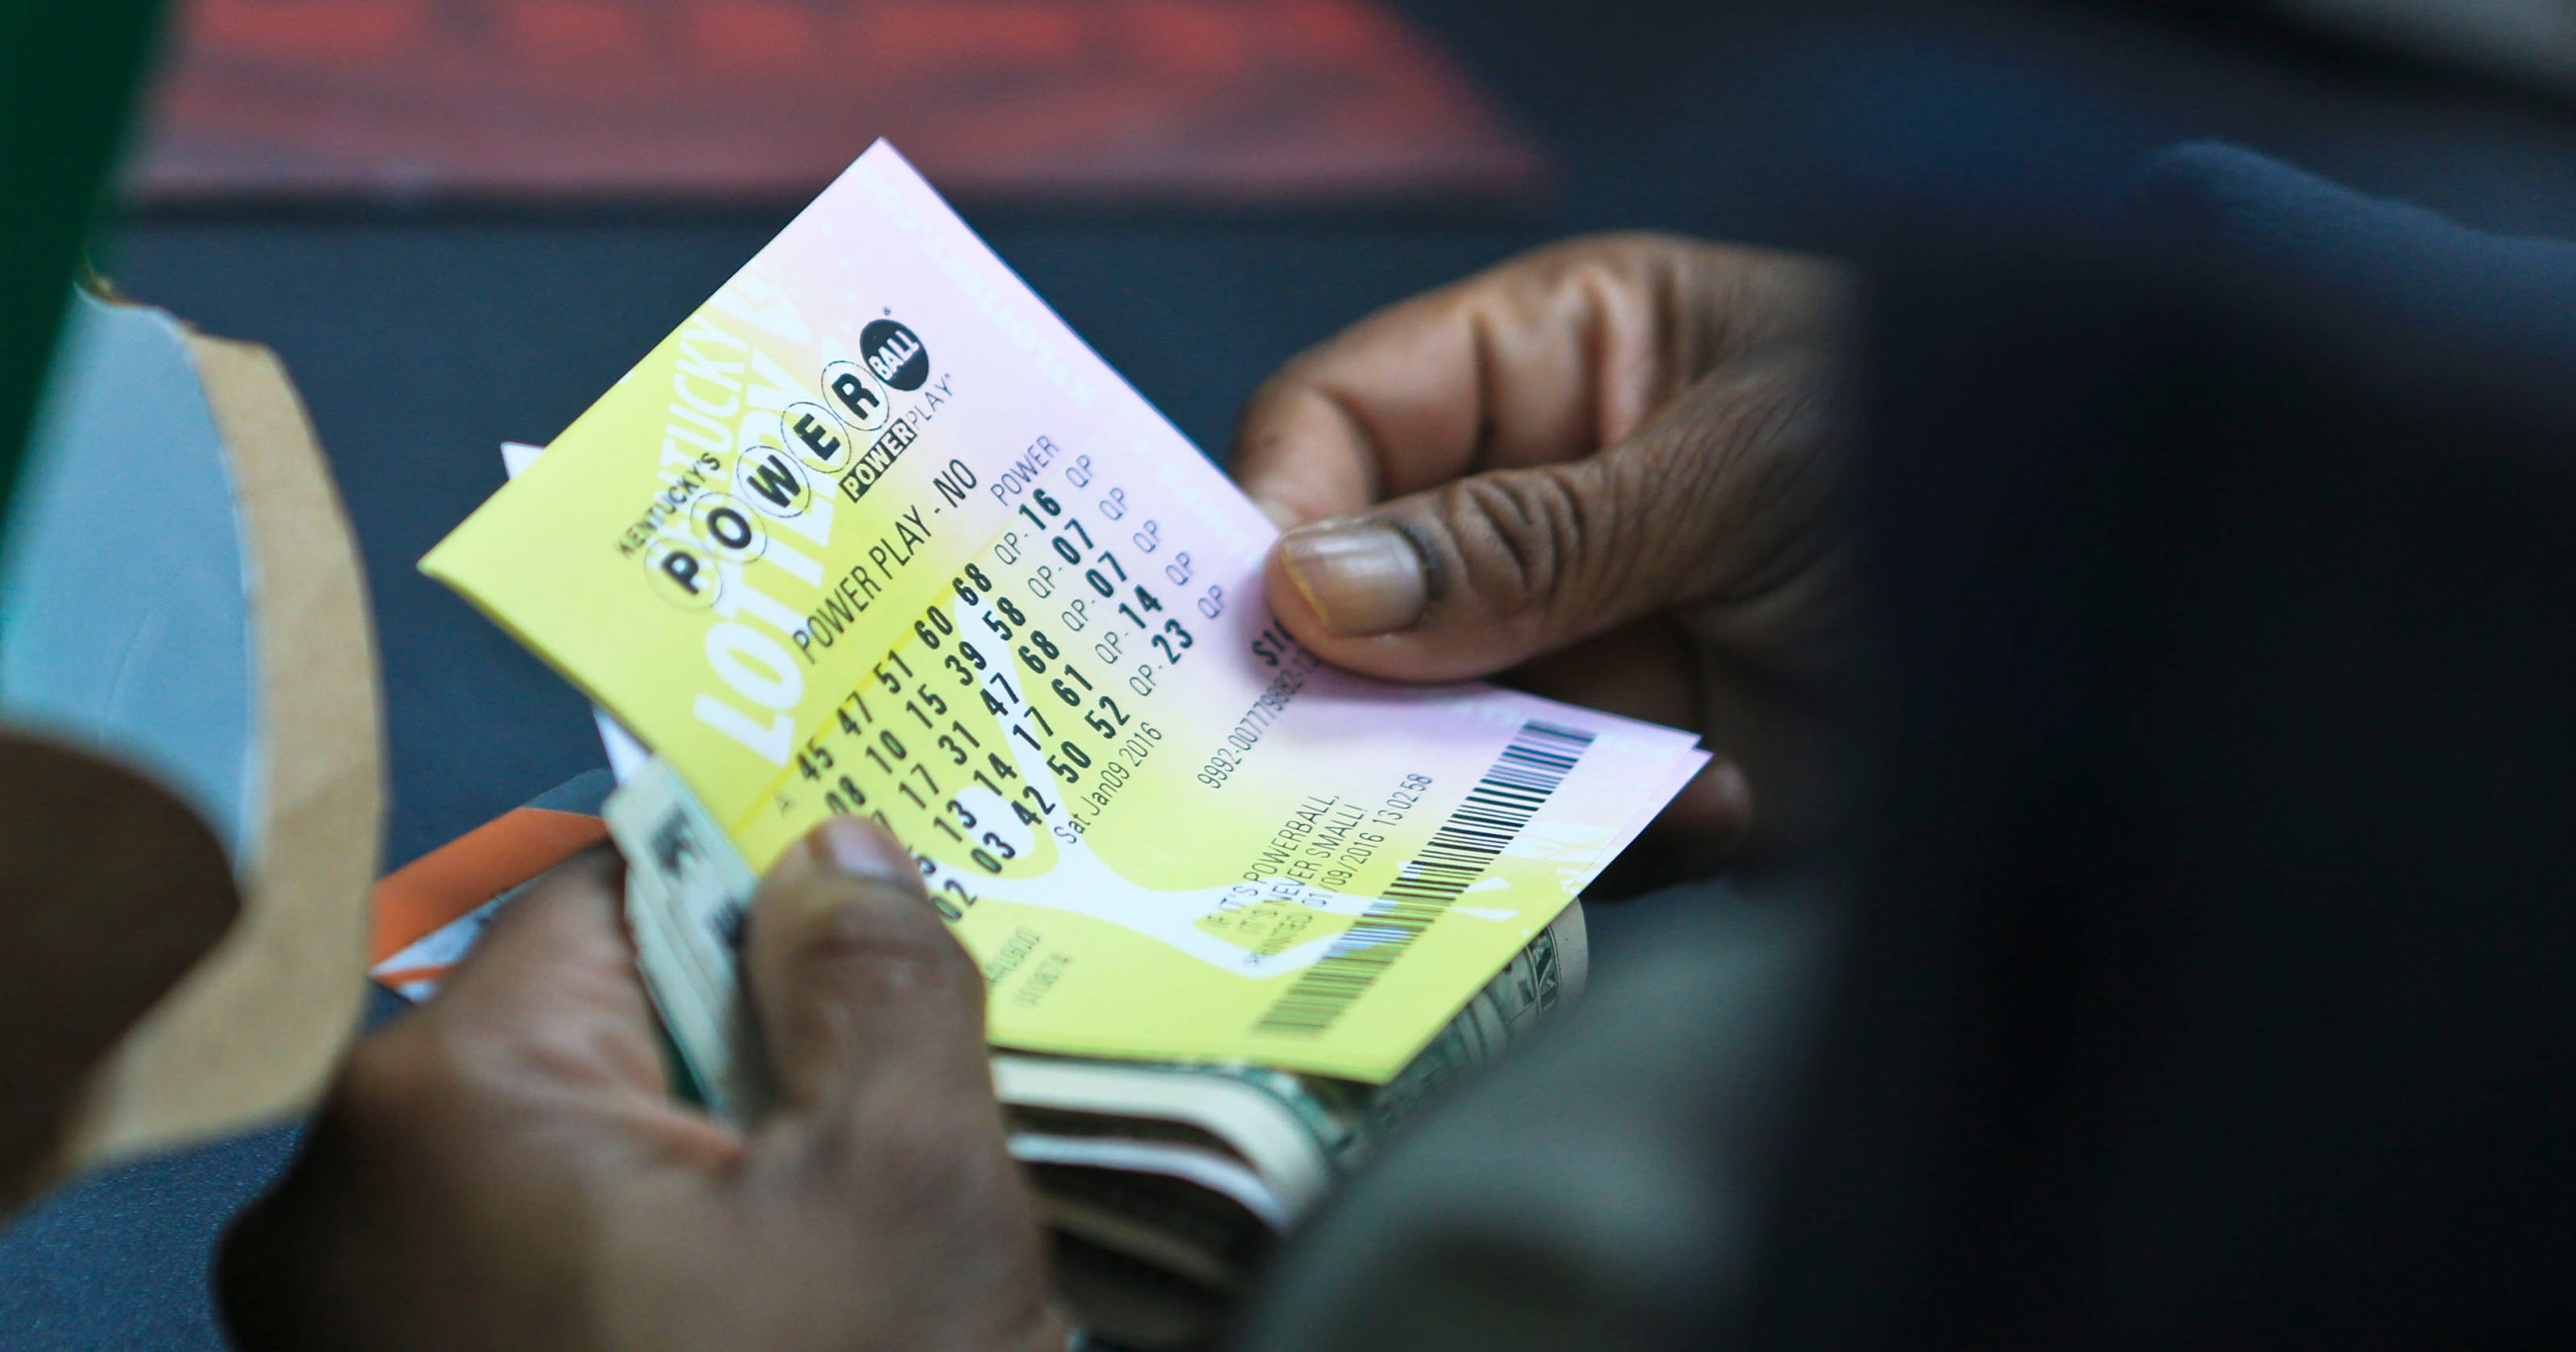 $1 million Powerball ticket sold in Kentucky on March 20